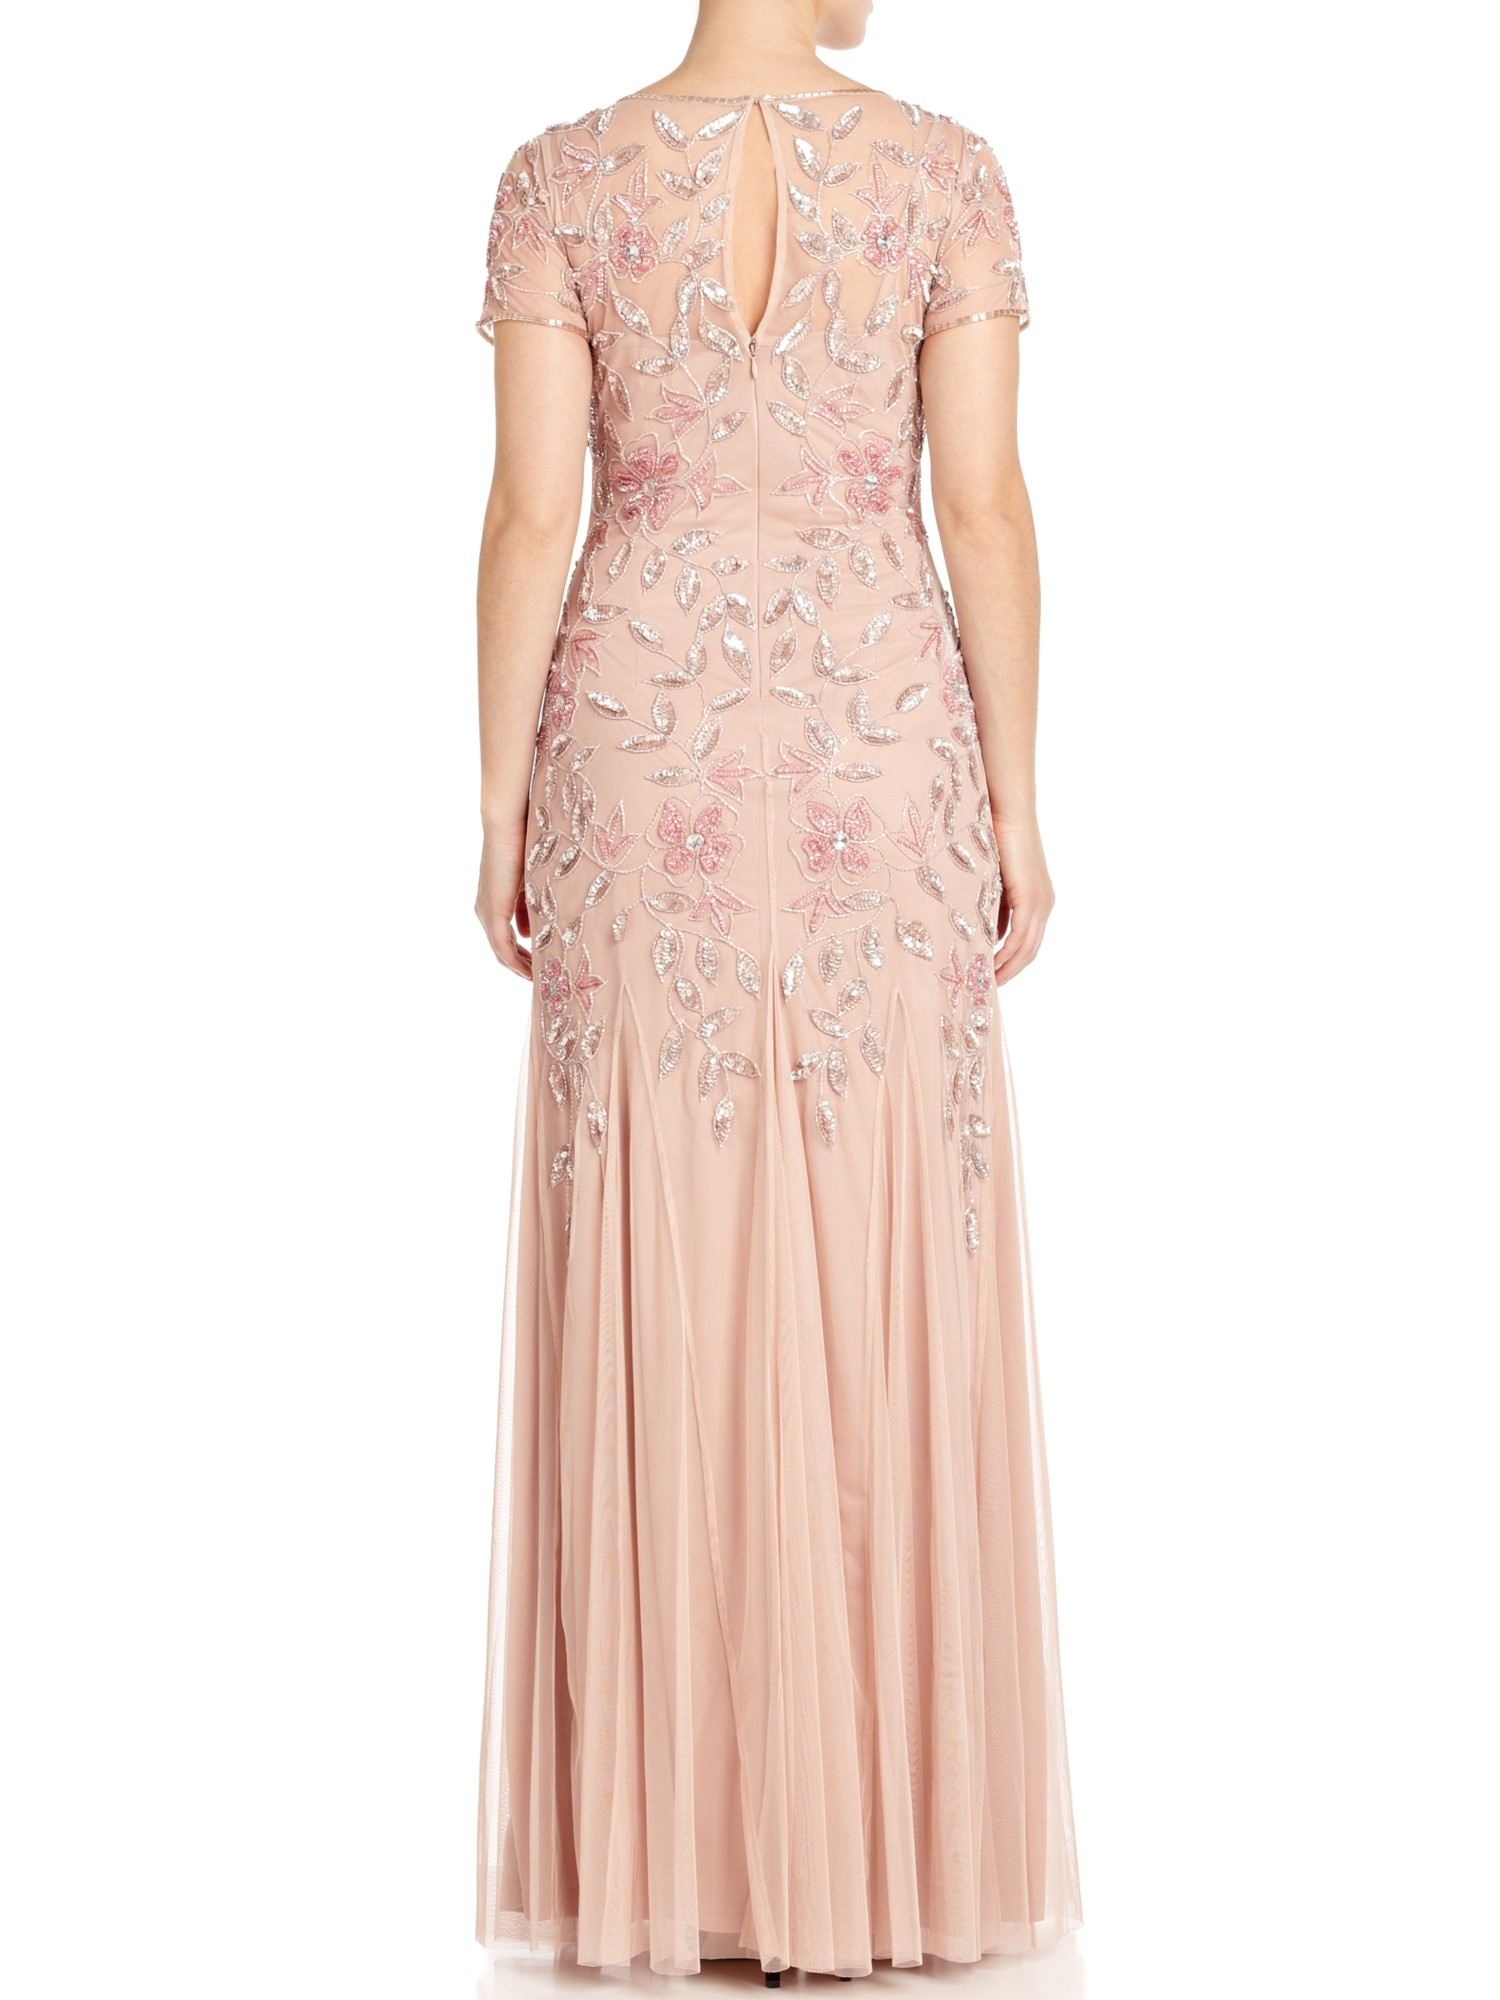 Adrianna Papell Floral Beaded Godet Gown In Natural Lyst